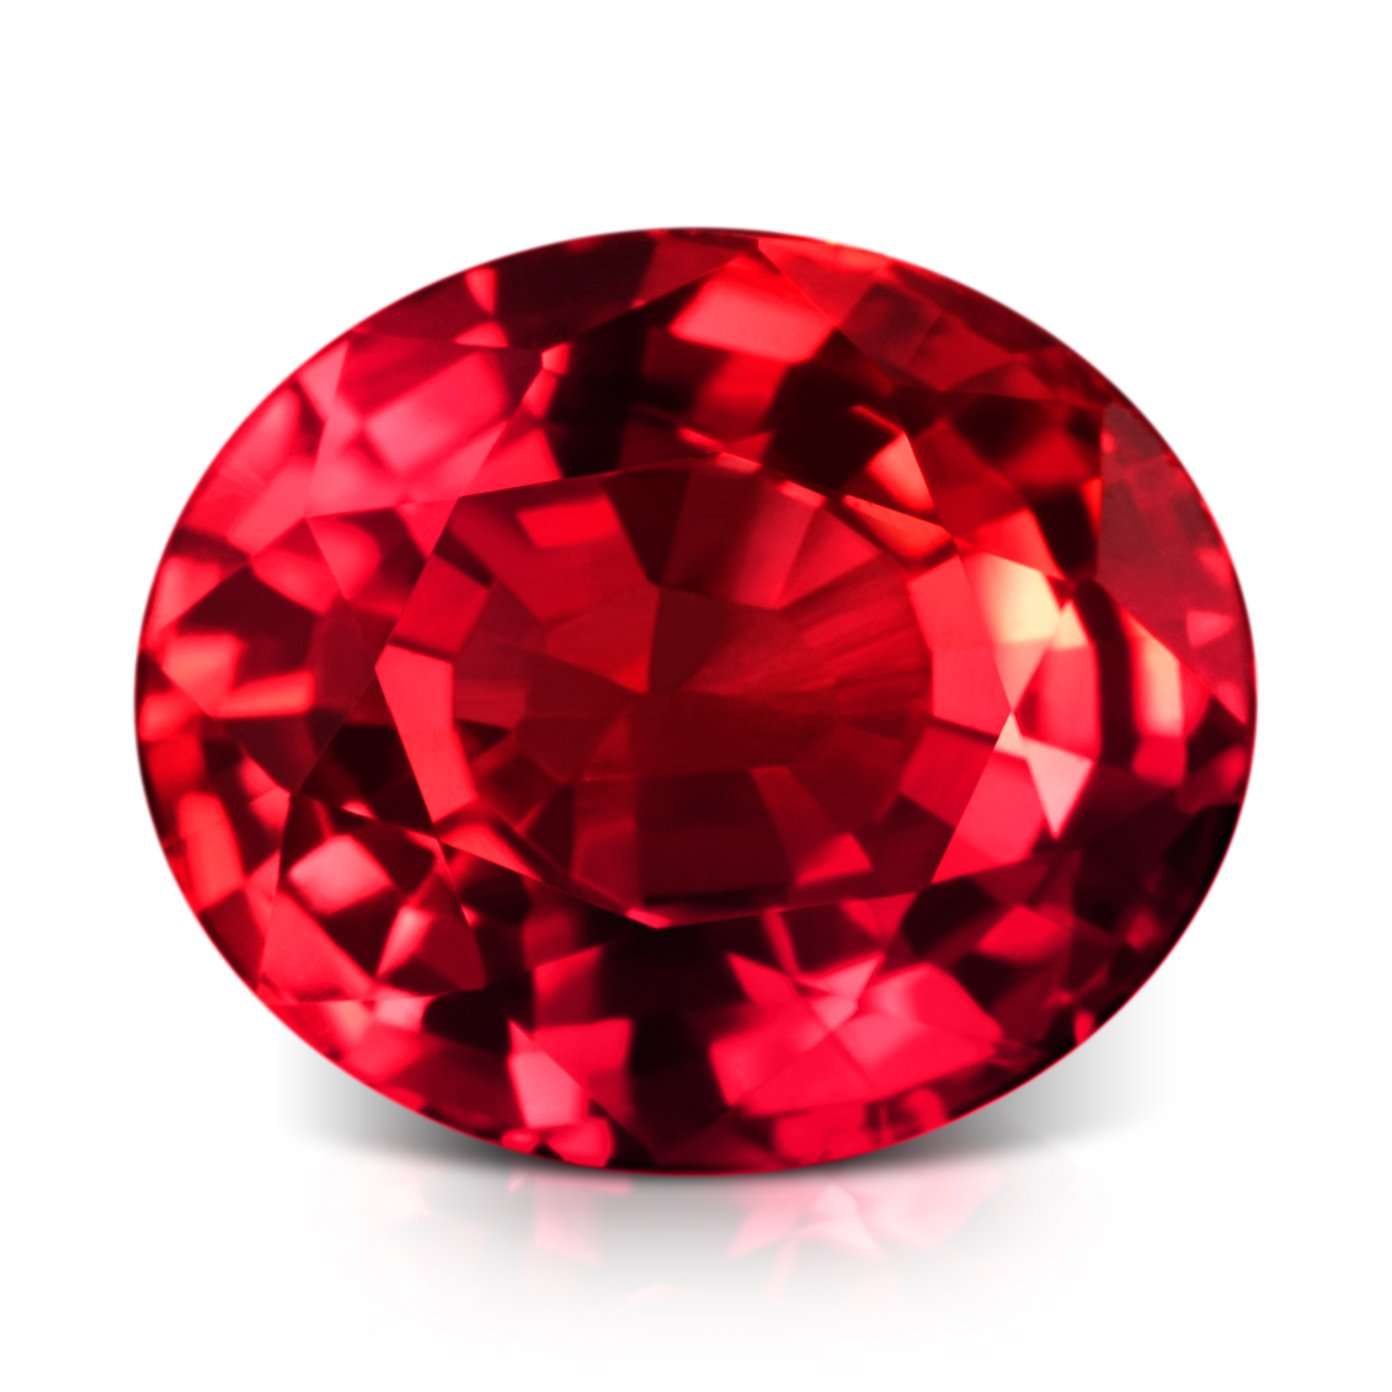 Ruby Gemstone Rings And Pendants Trends For 2018